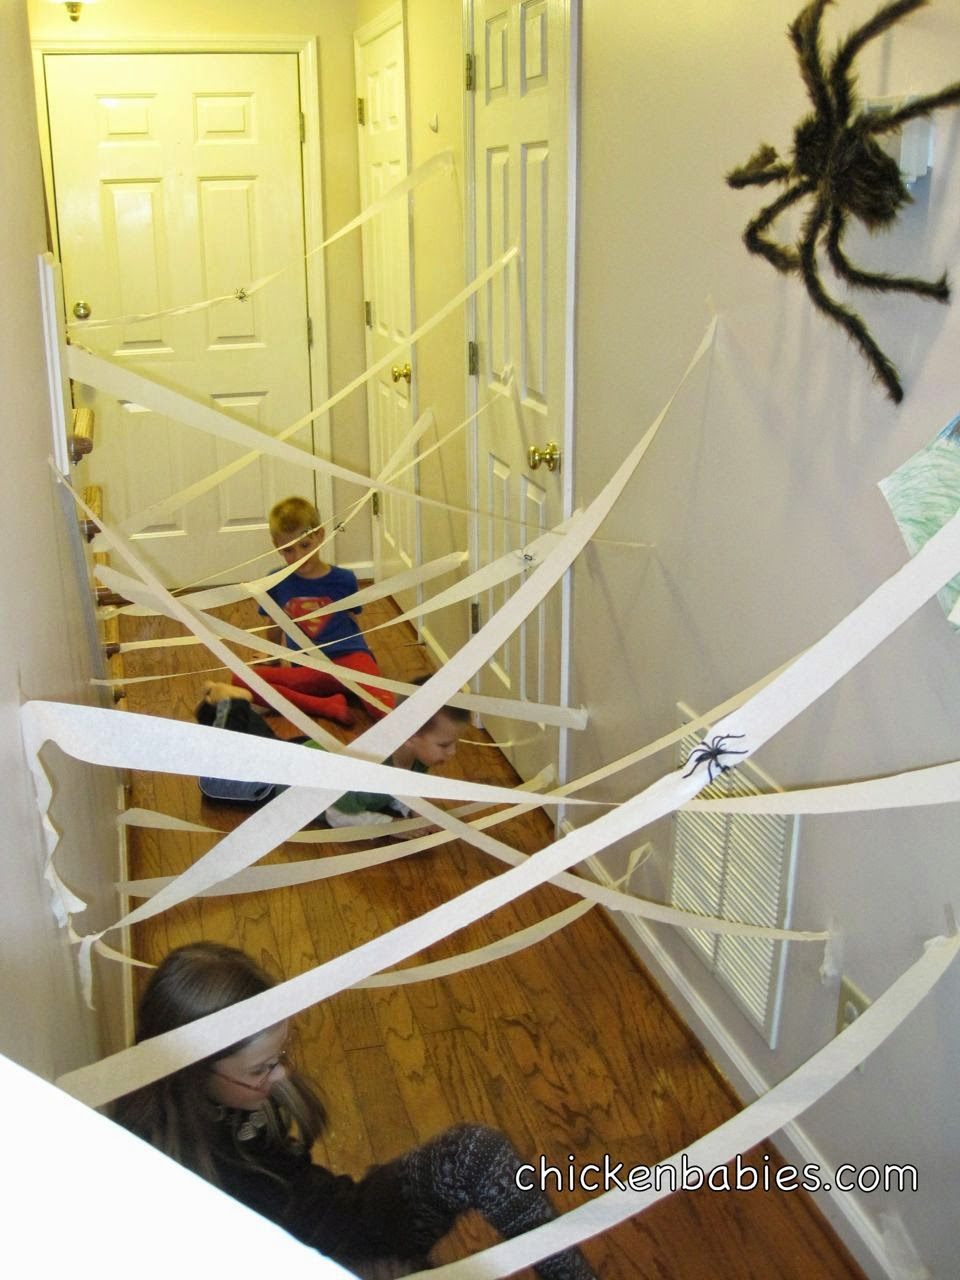 spider lair made with toilet paper